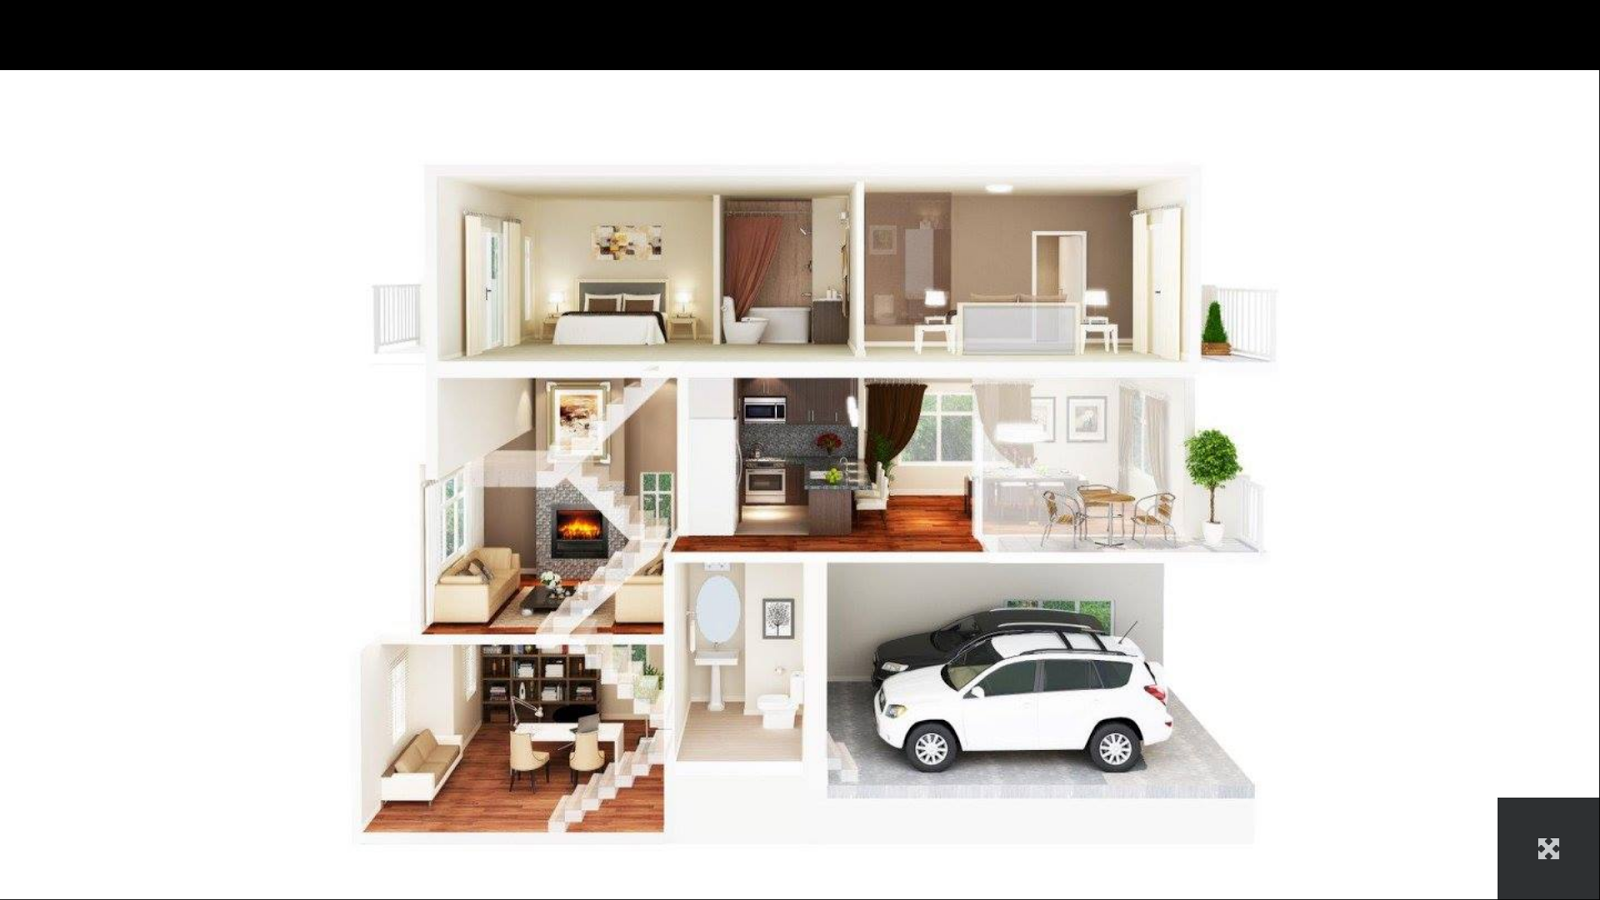 3d house plans 1 2 apk download android lifestyle apps for How to design 3d house plans